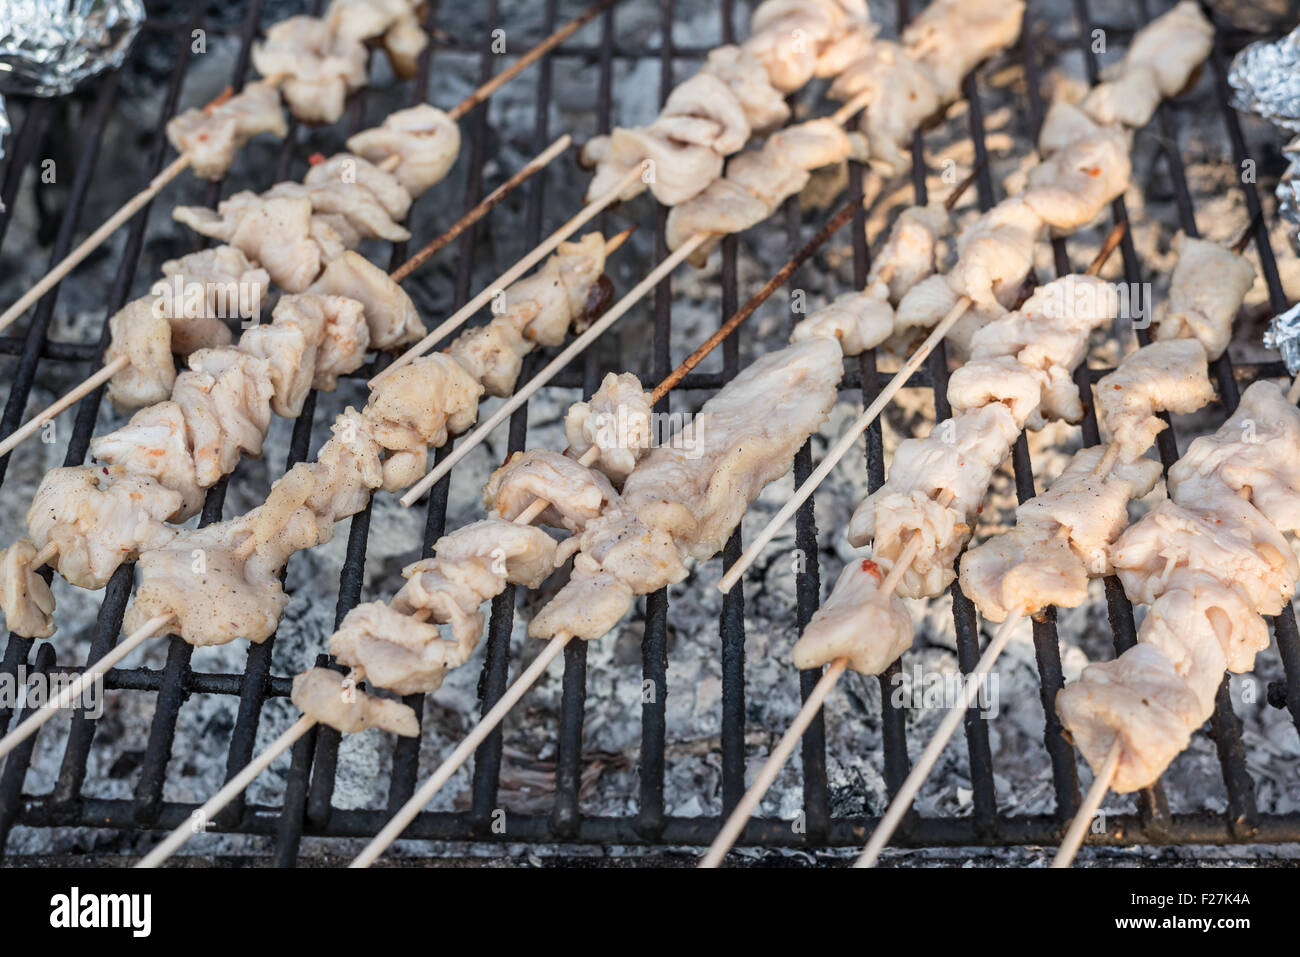 Marinated chicken skewers on a bbq grill Stock Photo